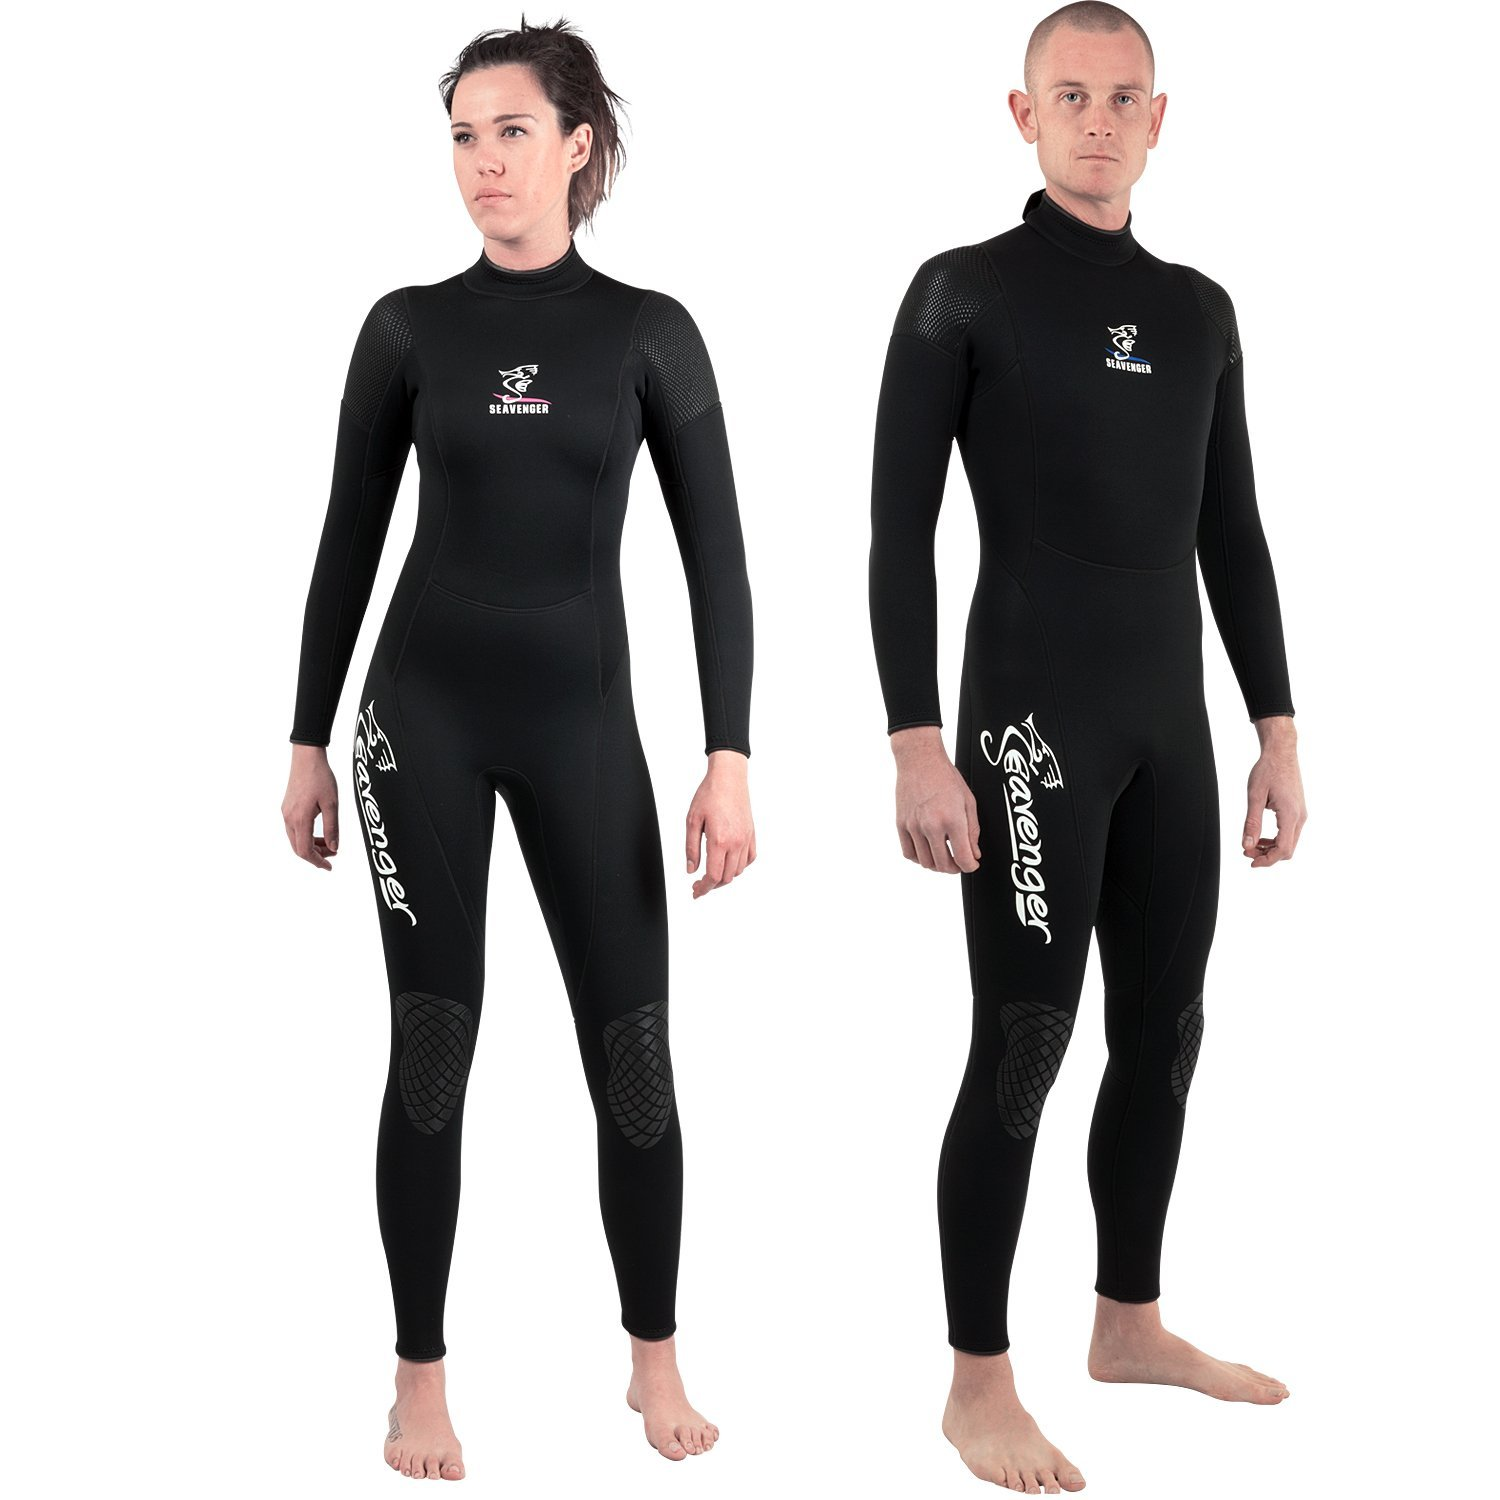 seavenger-men-and-women-3mm-wetsuit-review